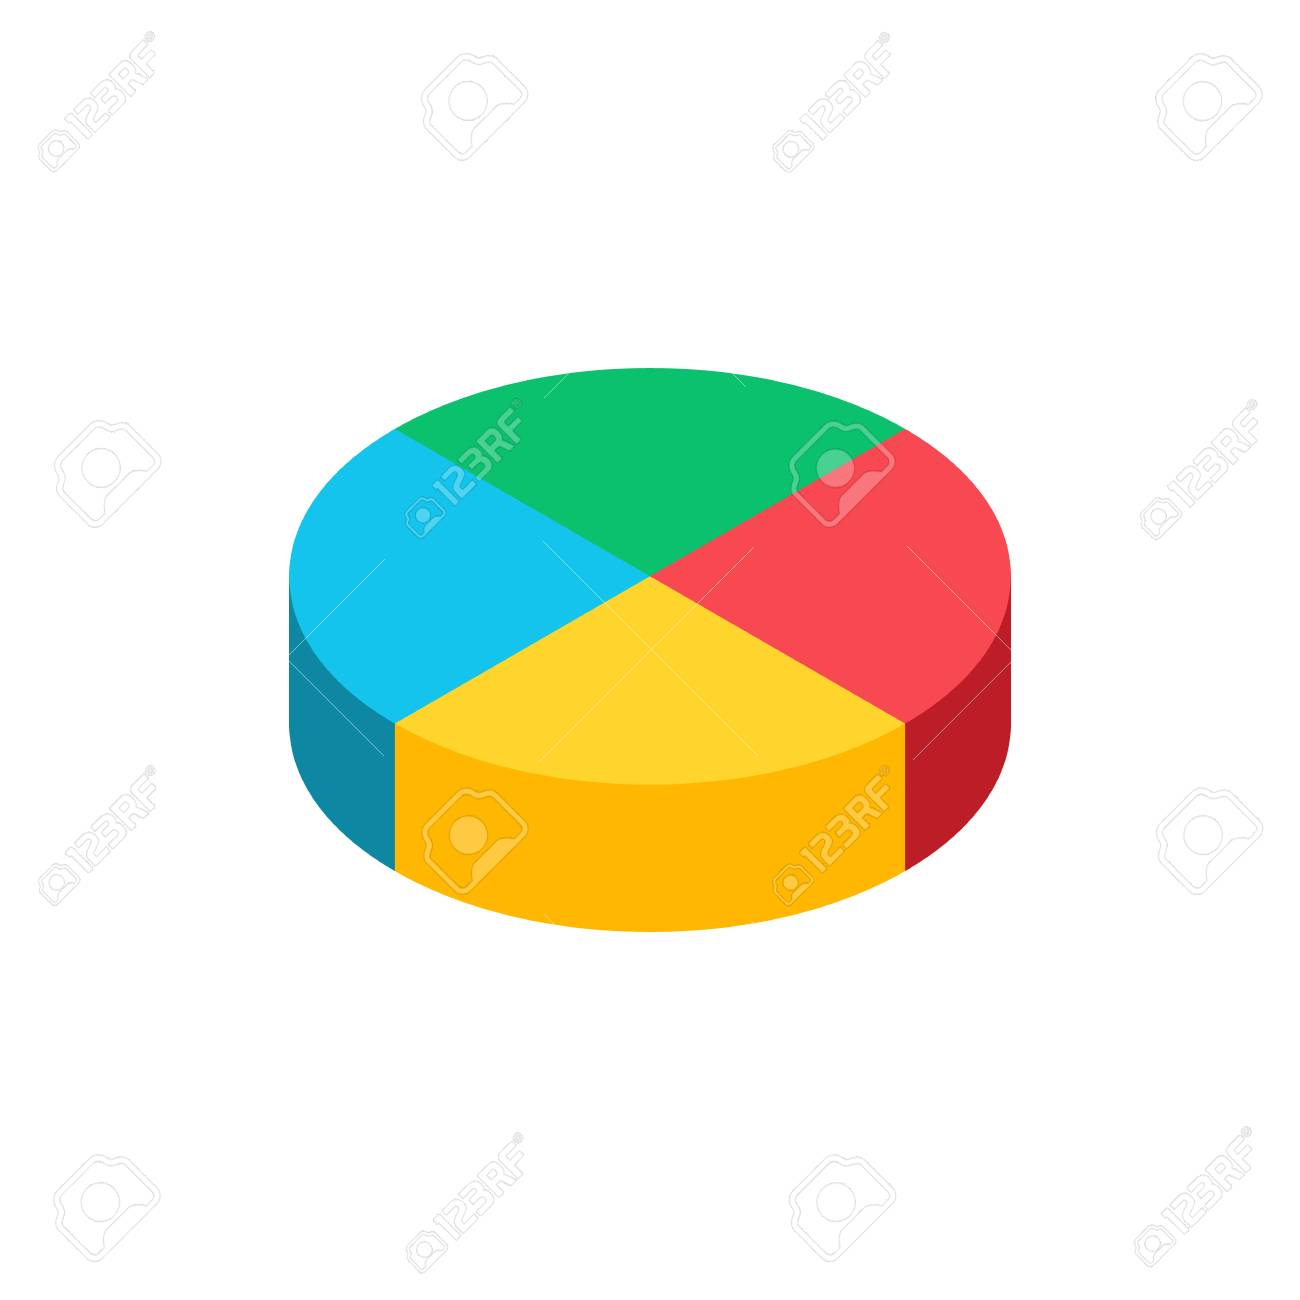 hight resolution of bulk isometric pie graph template realistic three dimensional pie chart business data